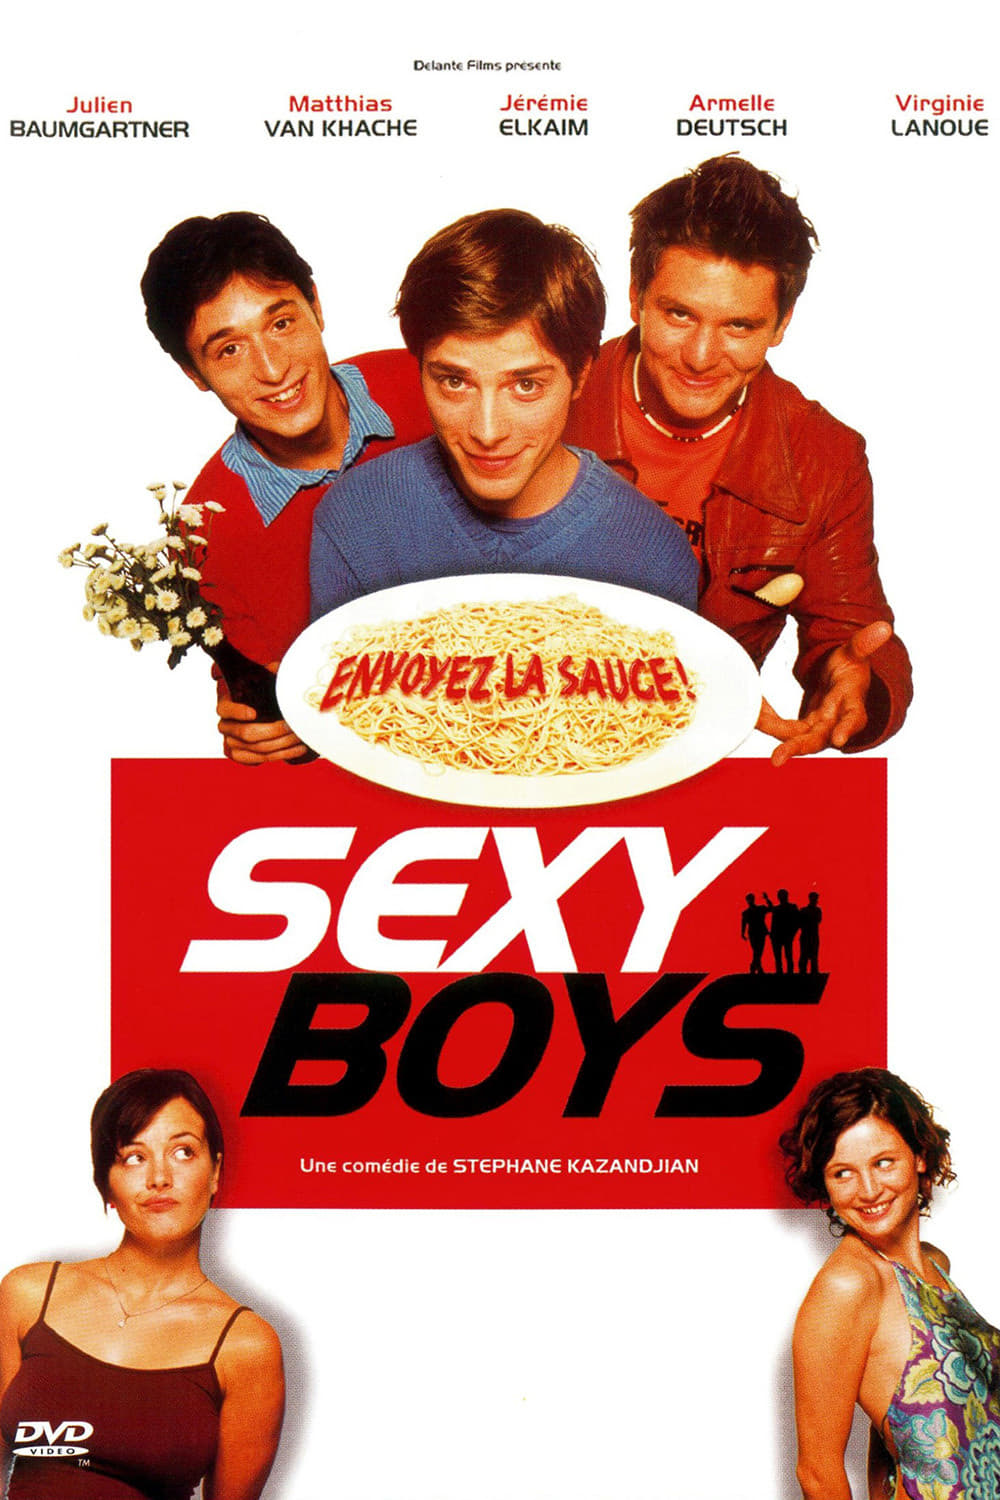 watch Sexy boys 2001 online free